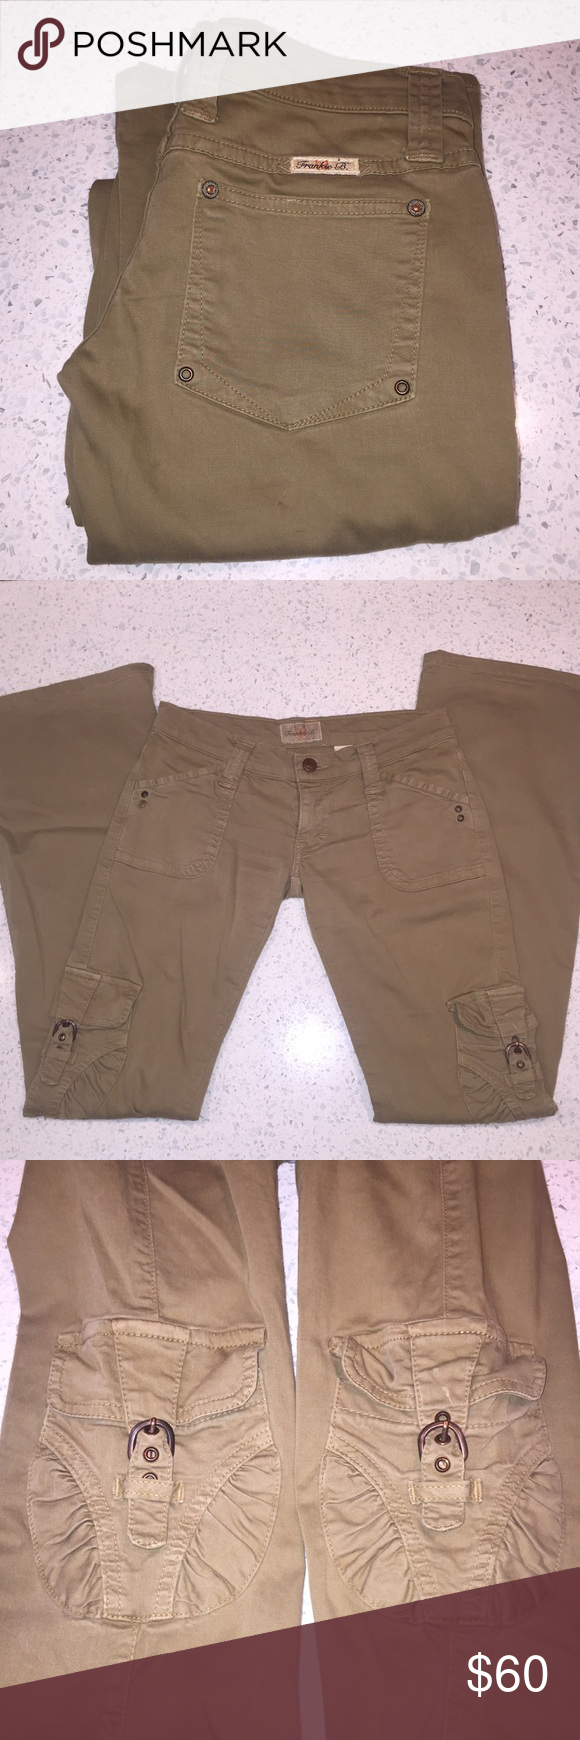 Frankie B Hip Hugger Cargo Pants With Images Cargo Pants Pants Cargo Jeans